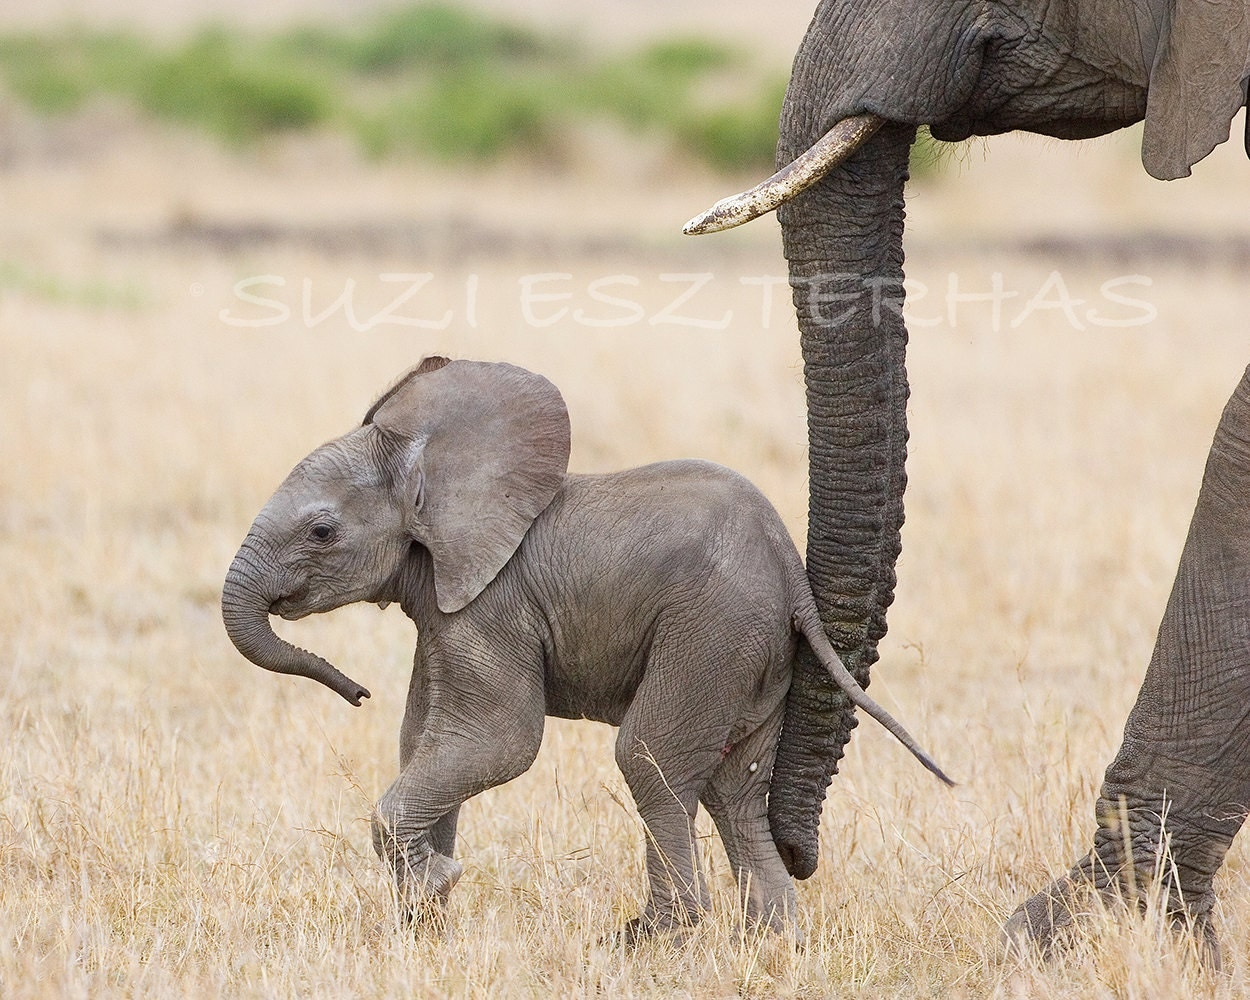 50 Off Sale Baby Elephant Photo Print African By Wildbabies